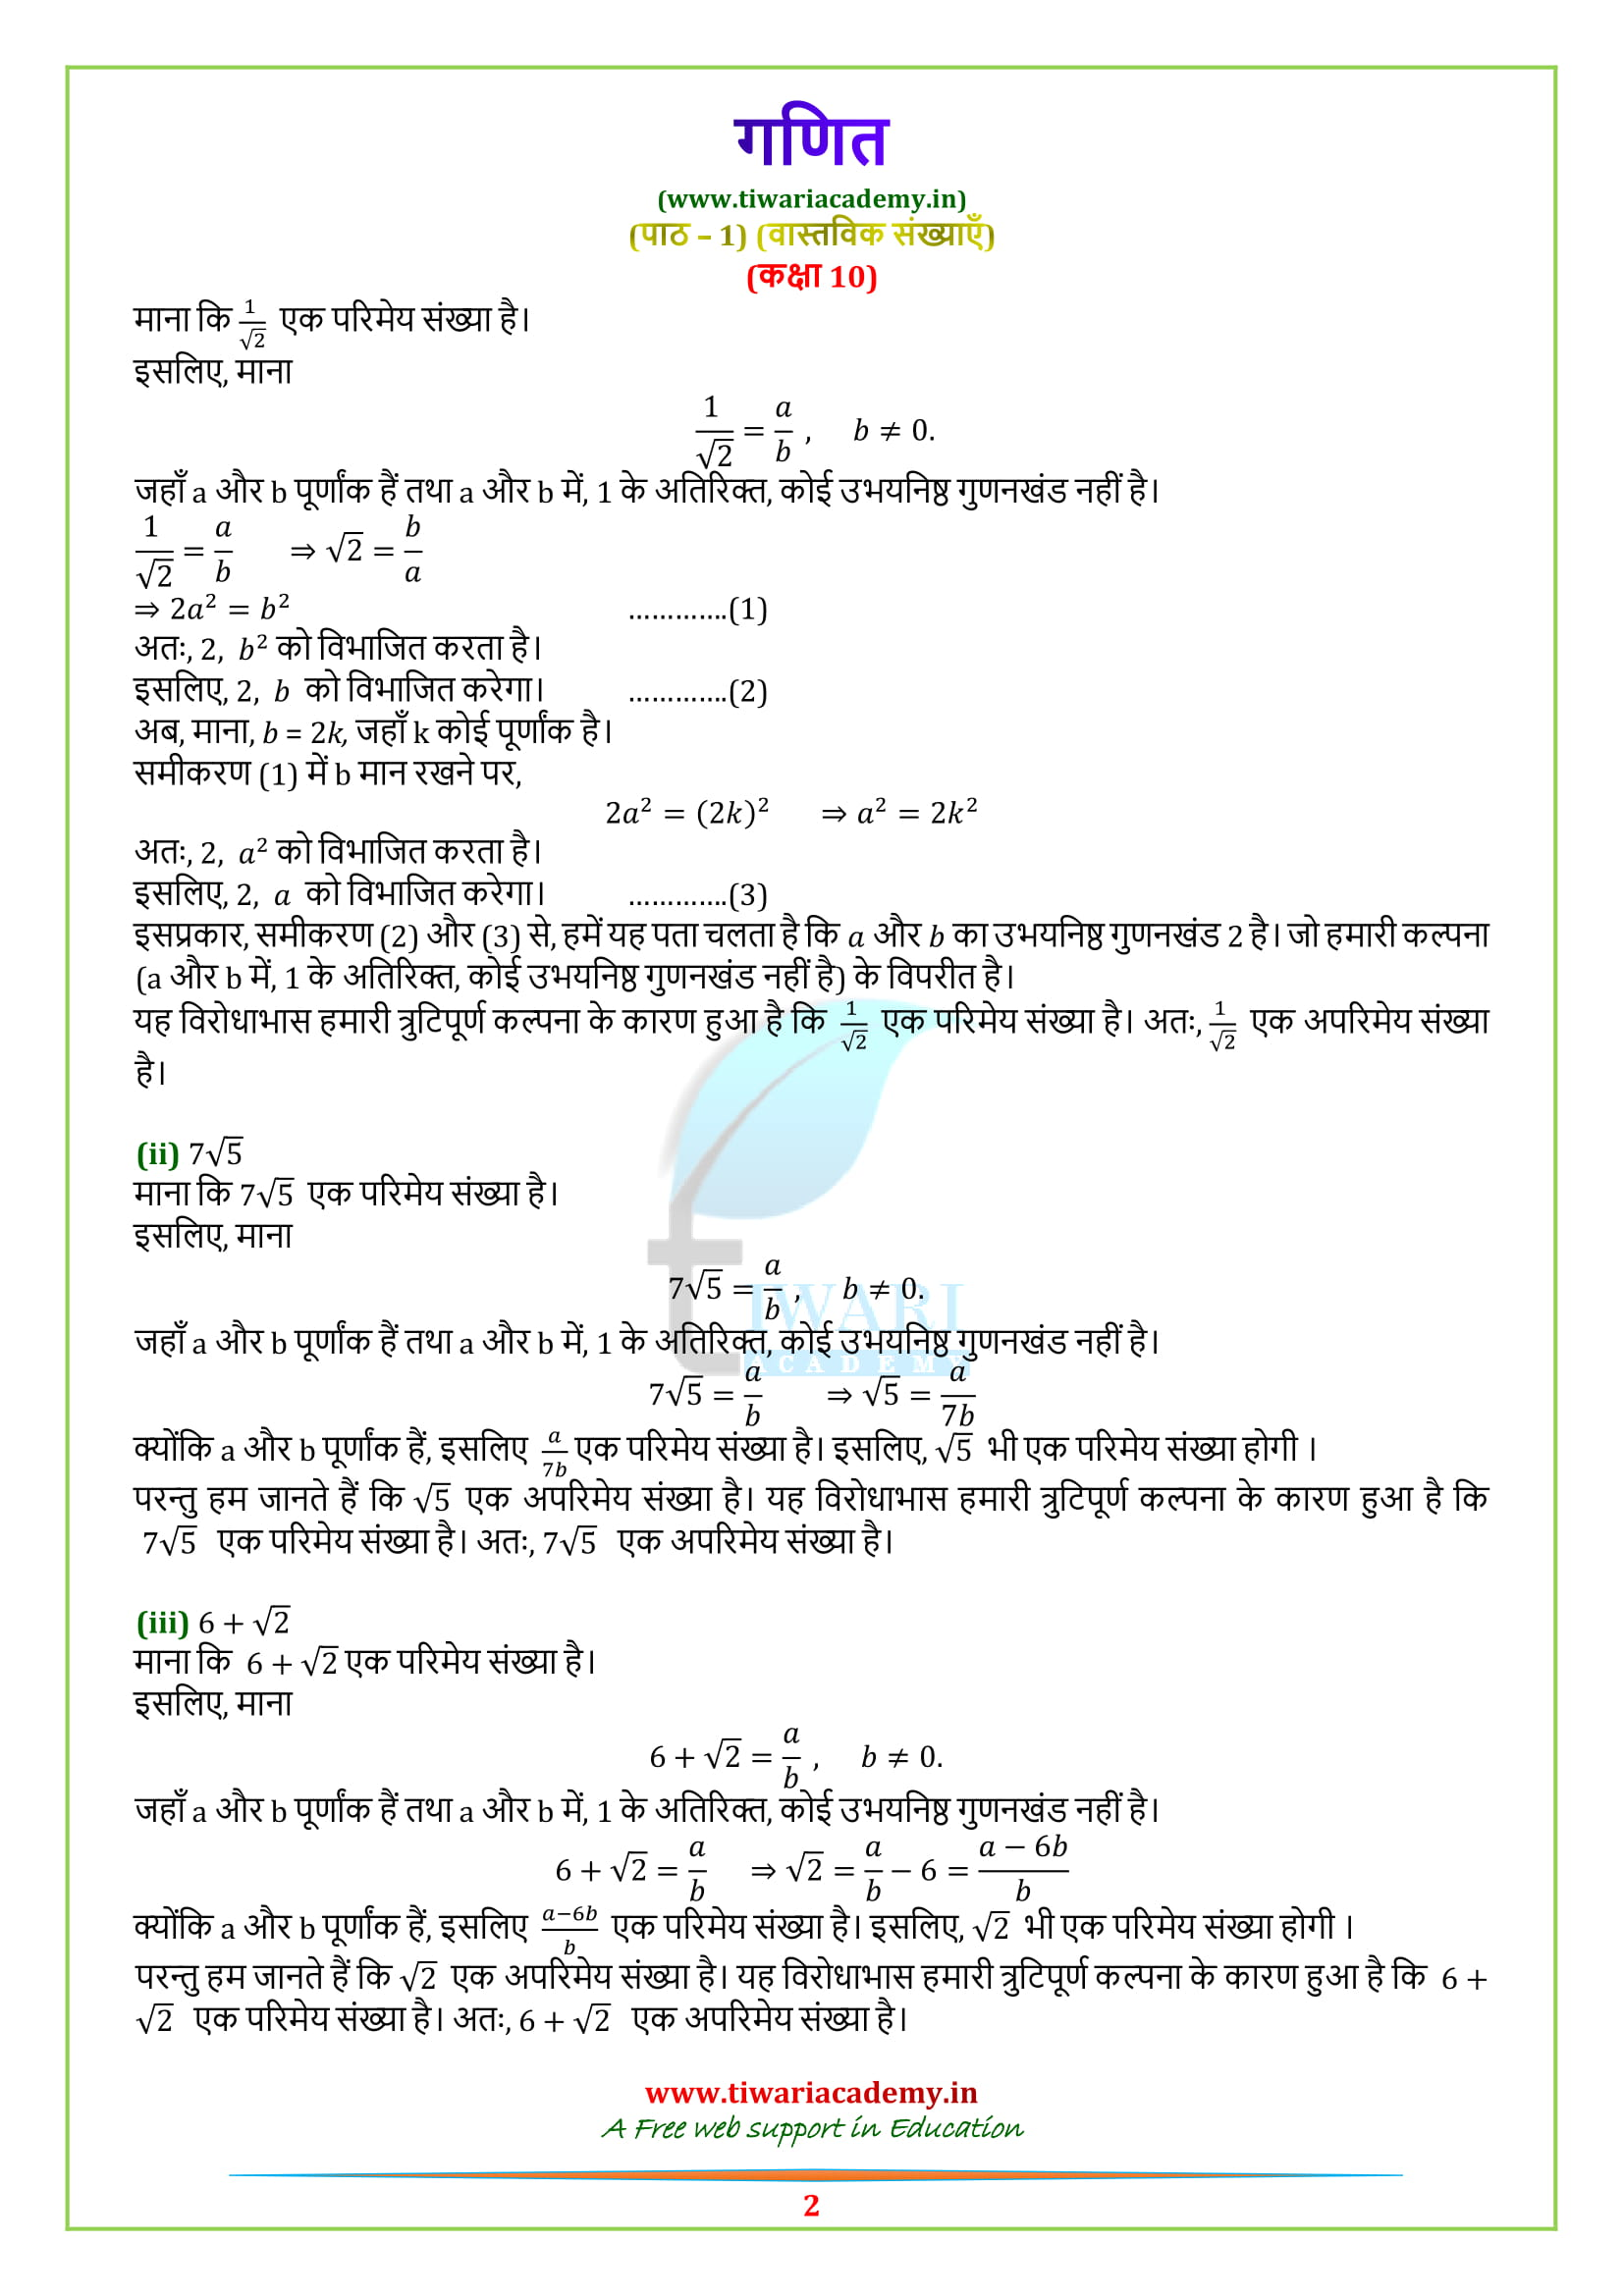 NCERT Solutions for class 10 Maths chapter 1 exercise 1.3 in hindi me kunji